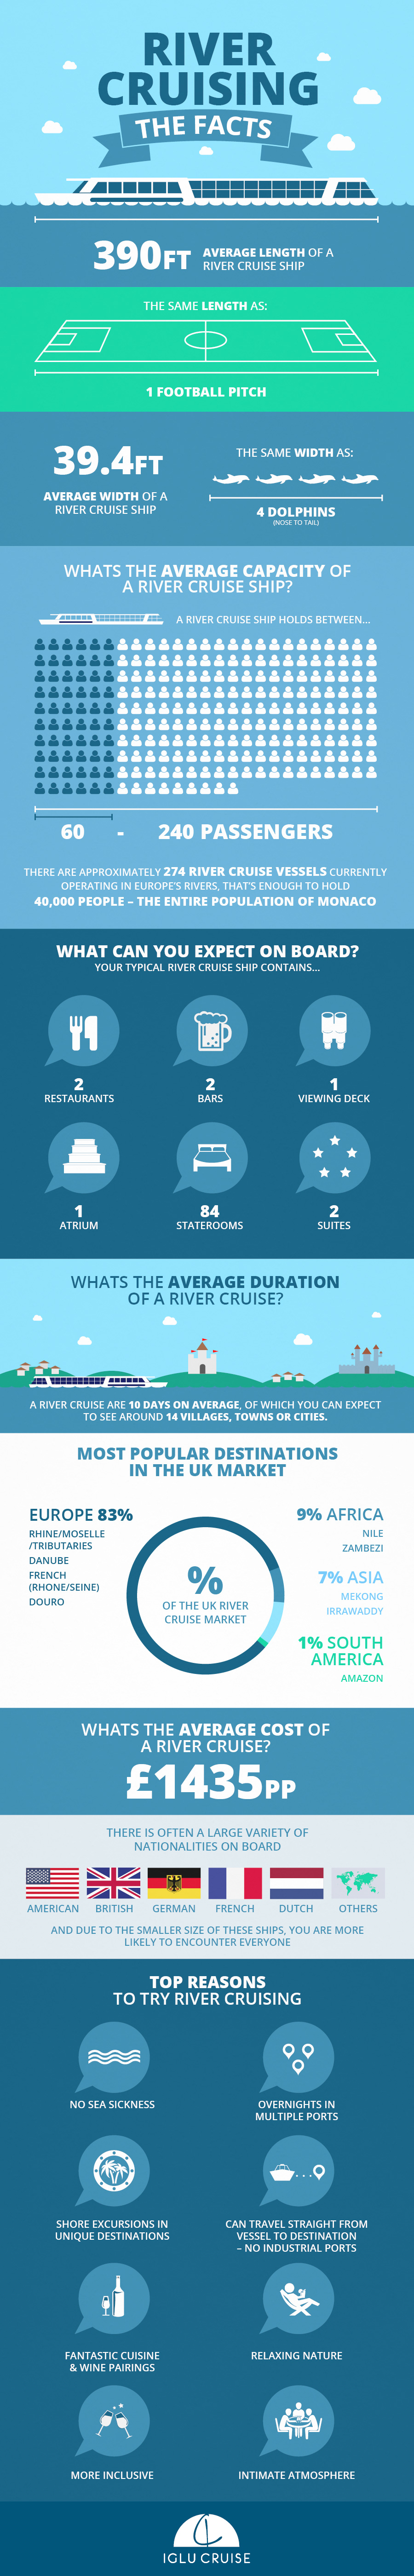 river cruise infographic